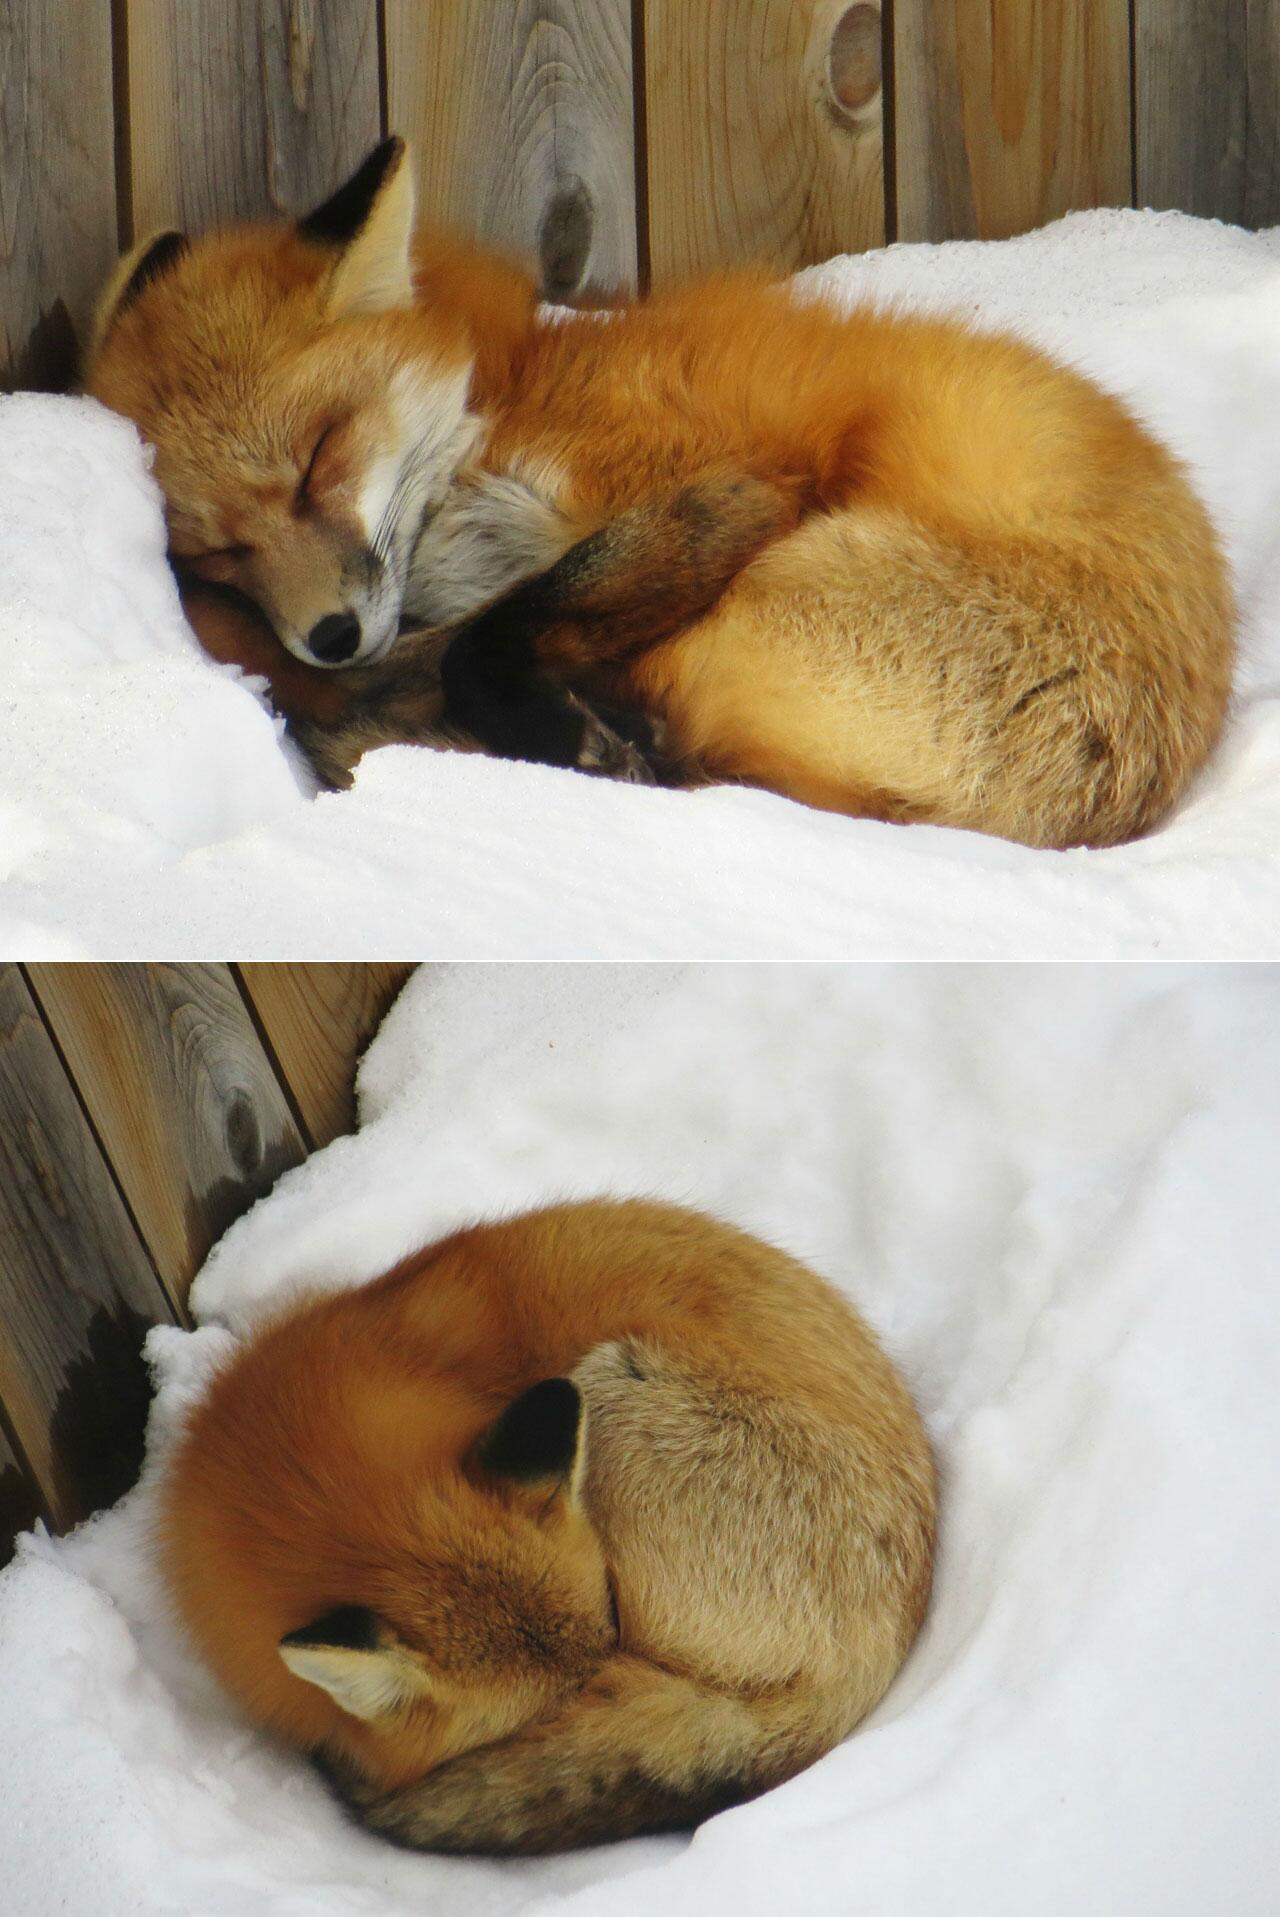 This red fox took a nap in someone's backyard http://t.co/X6fQZVPI4B